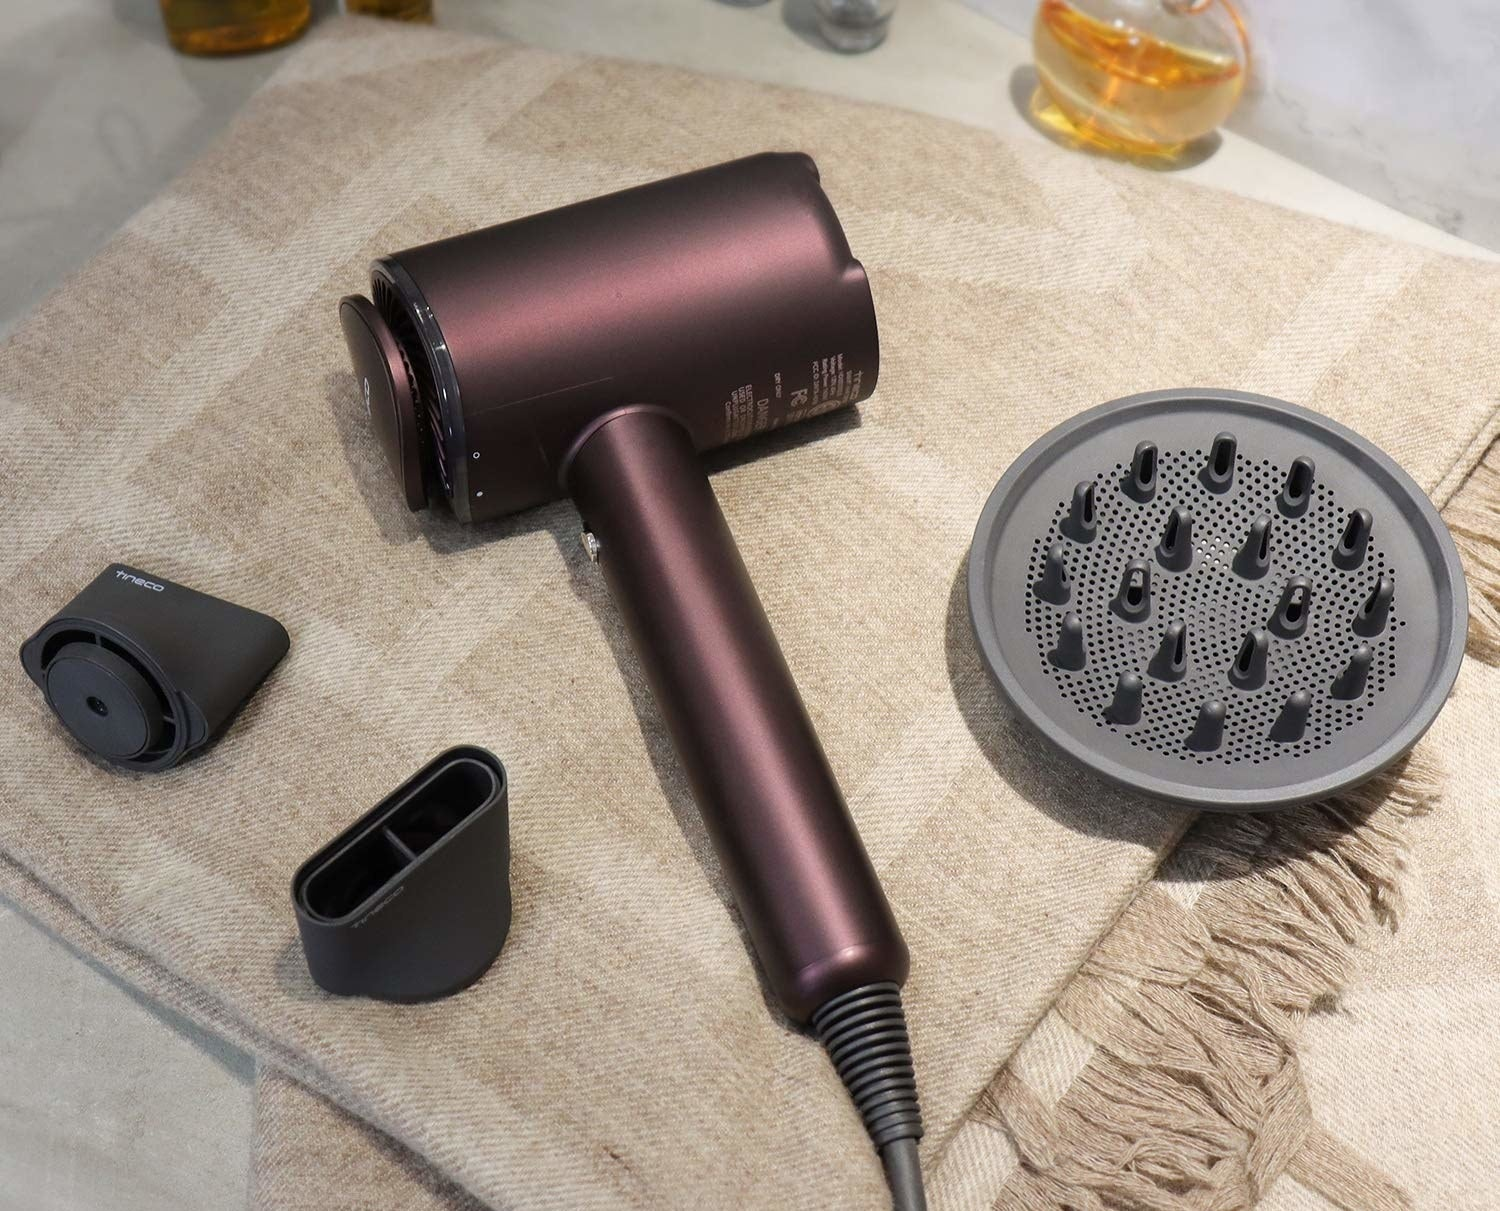 the purple hair dryer with magnetic attachments